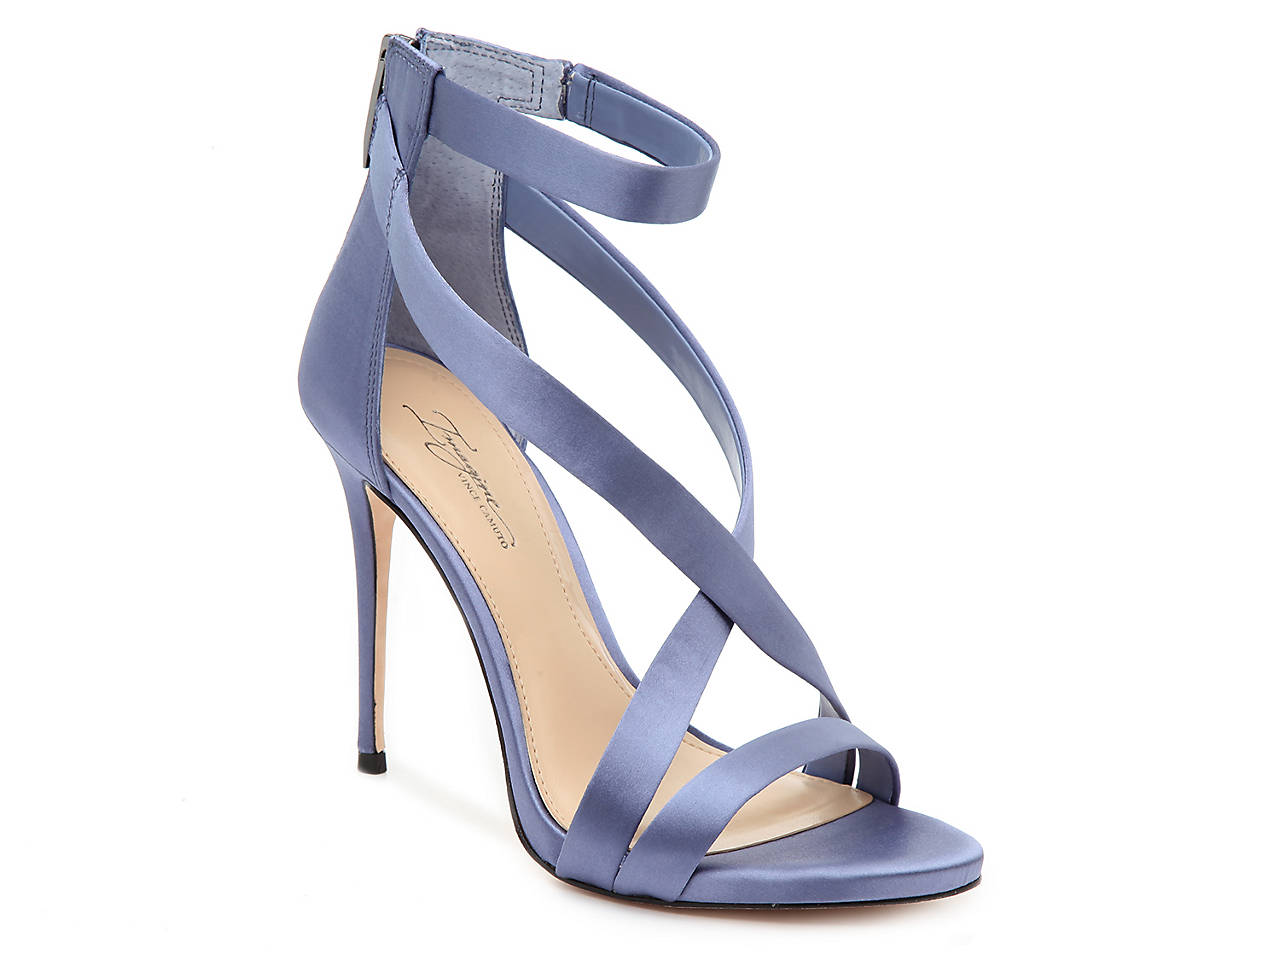 a1f4709fee6f Imagine Vince Camuto Devin Sandal Women s Shoes